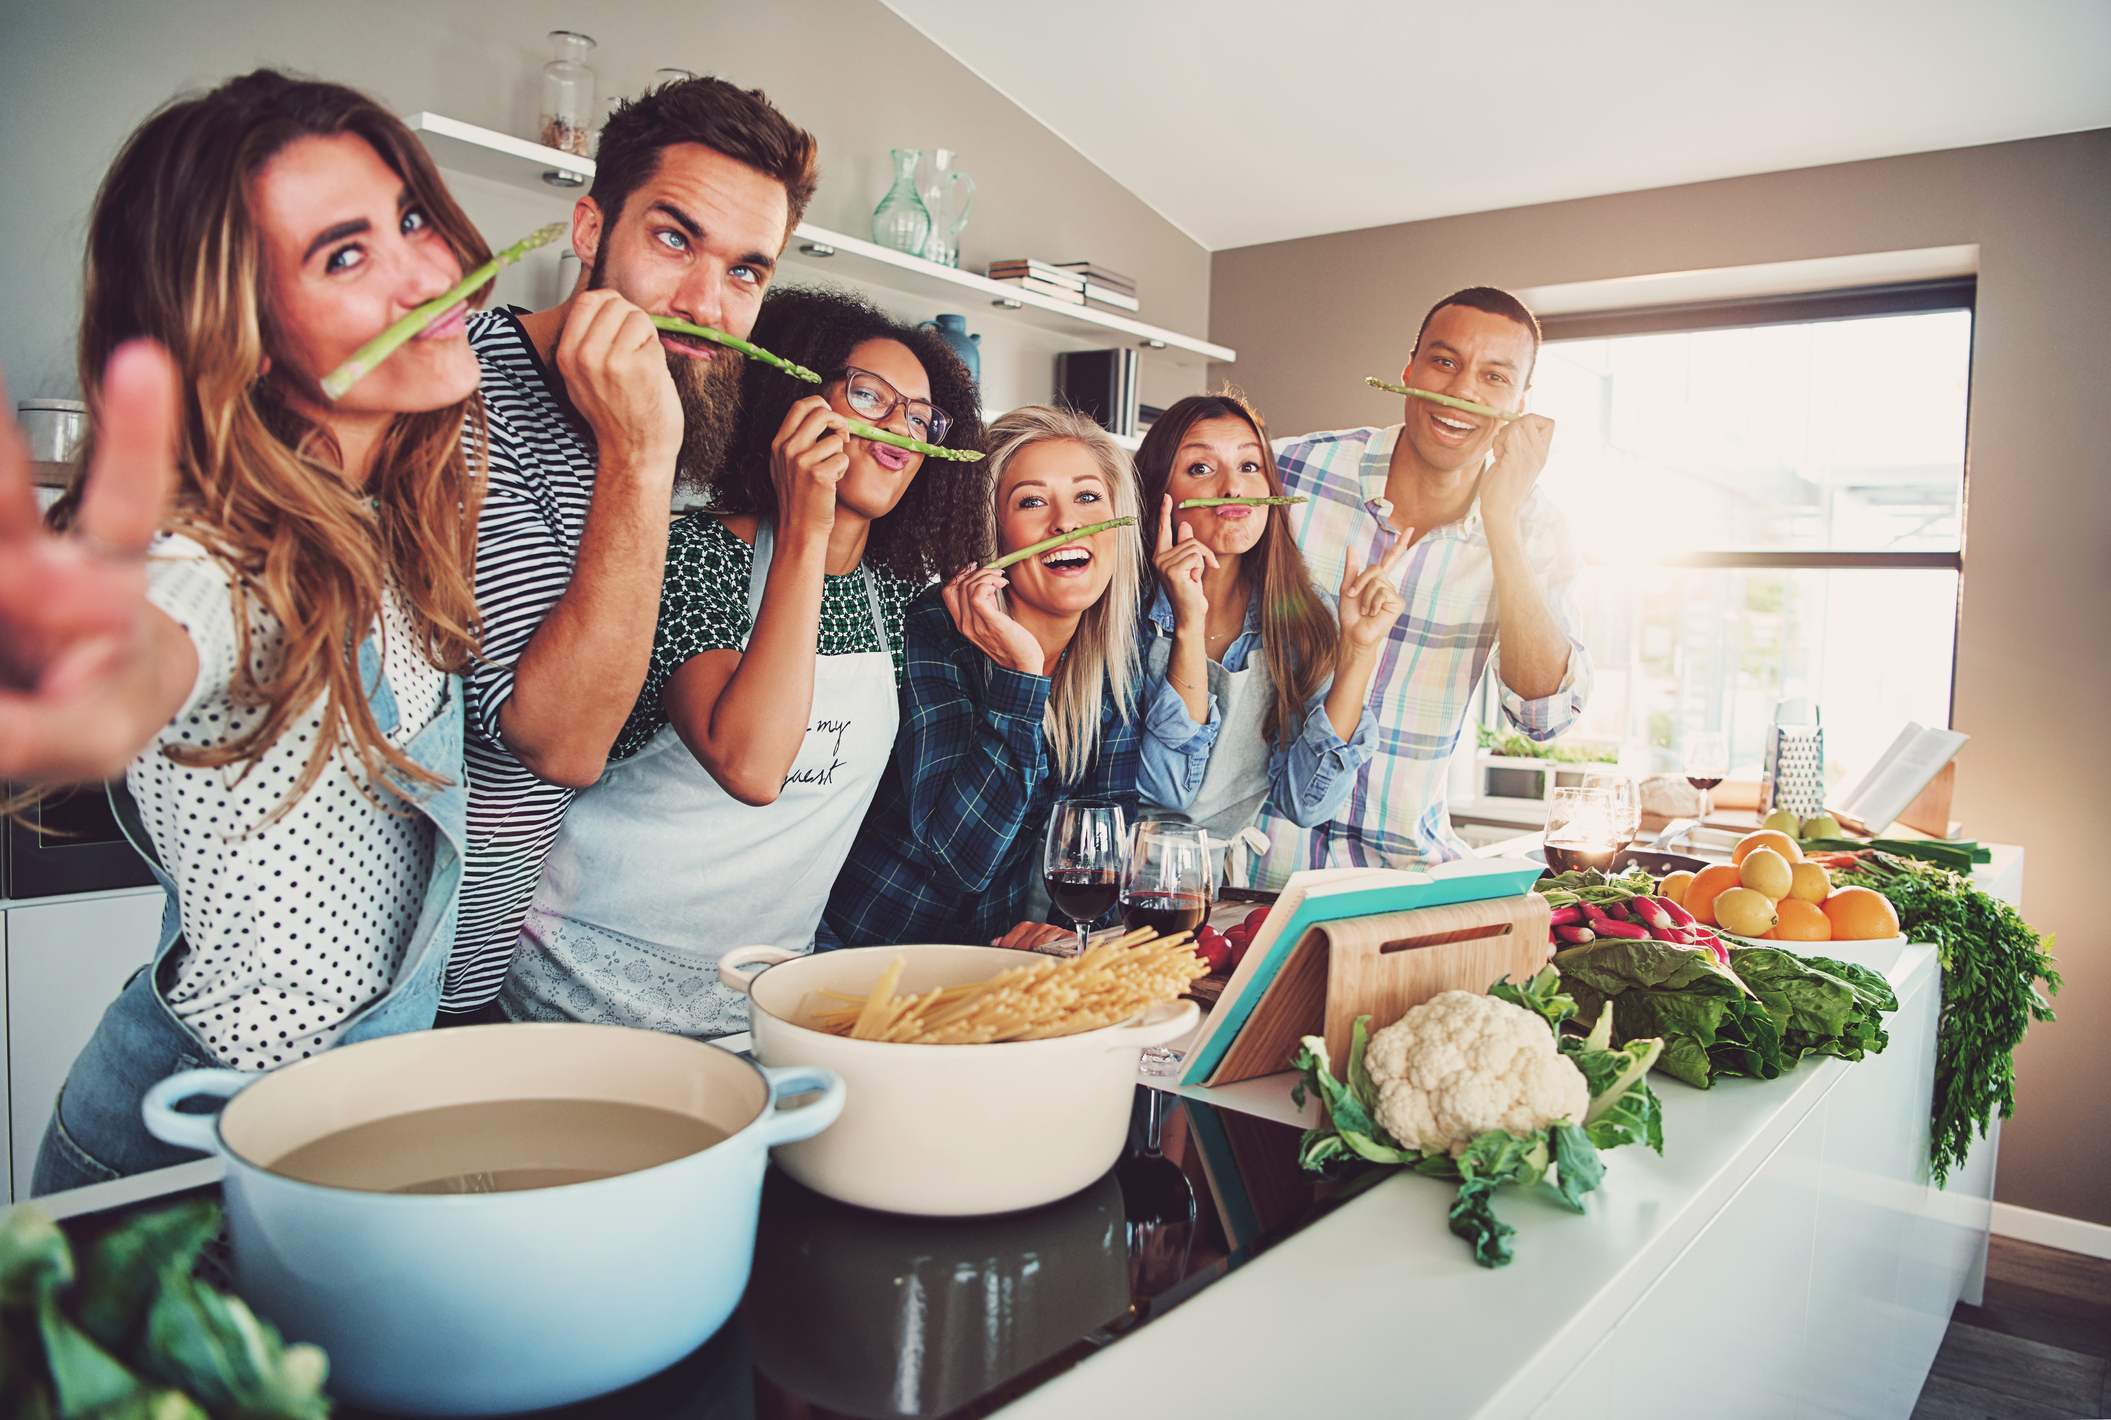 Five friends having a little break to fool around with some asparagus while cooking